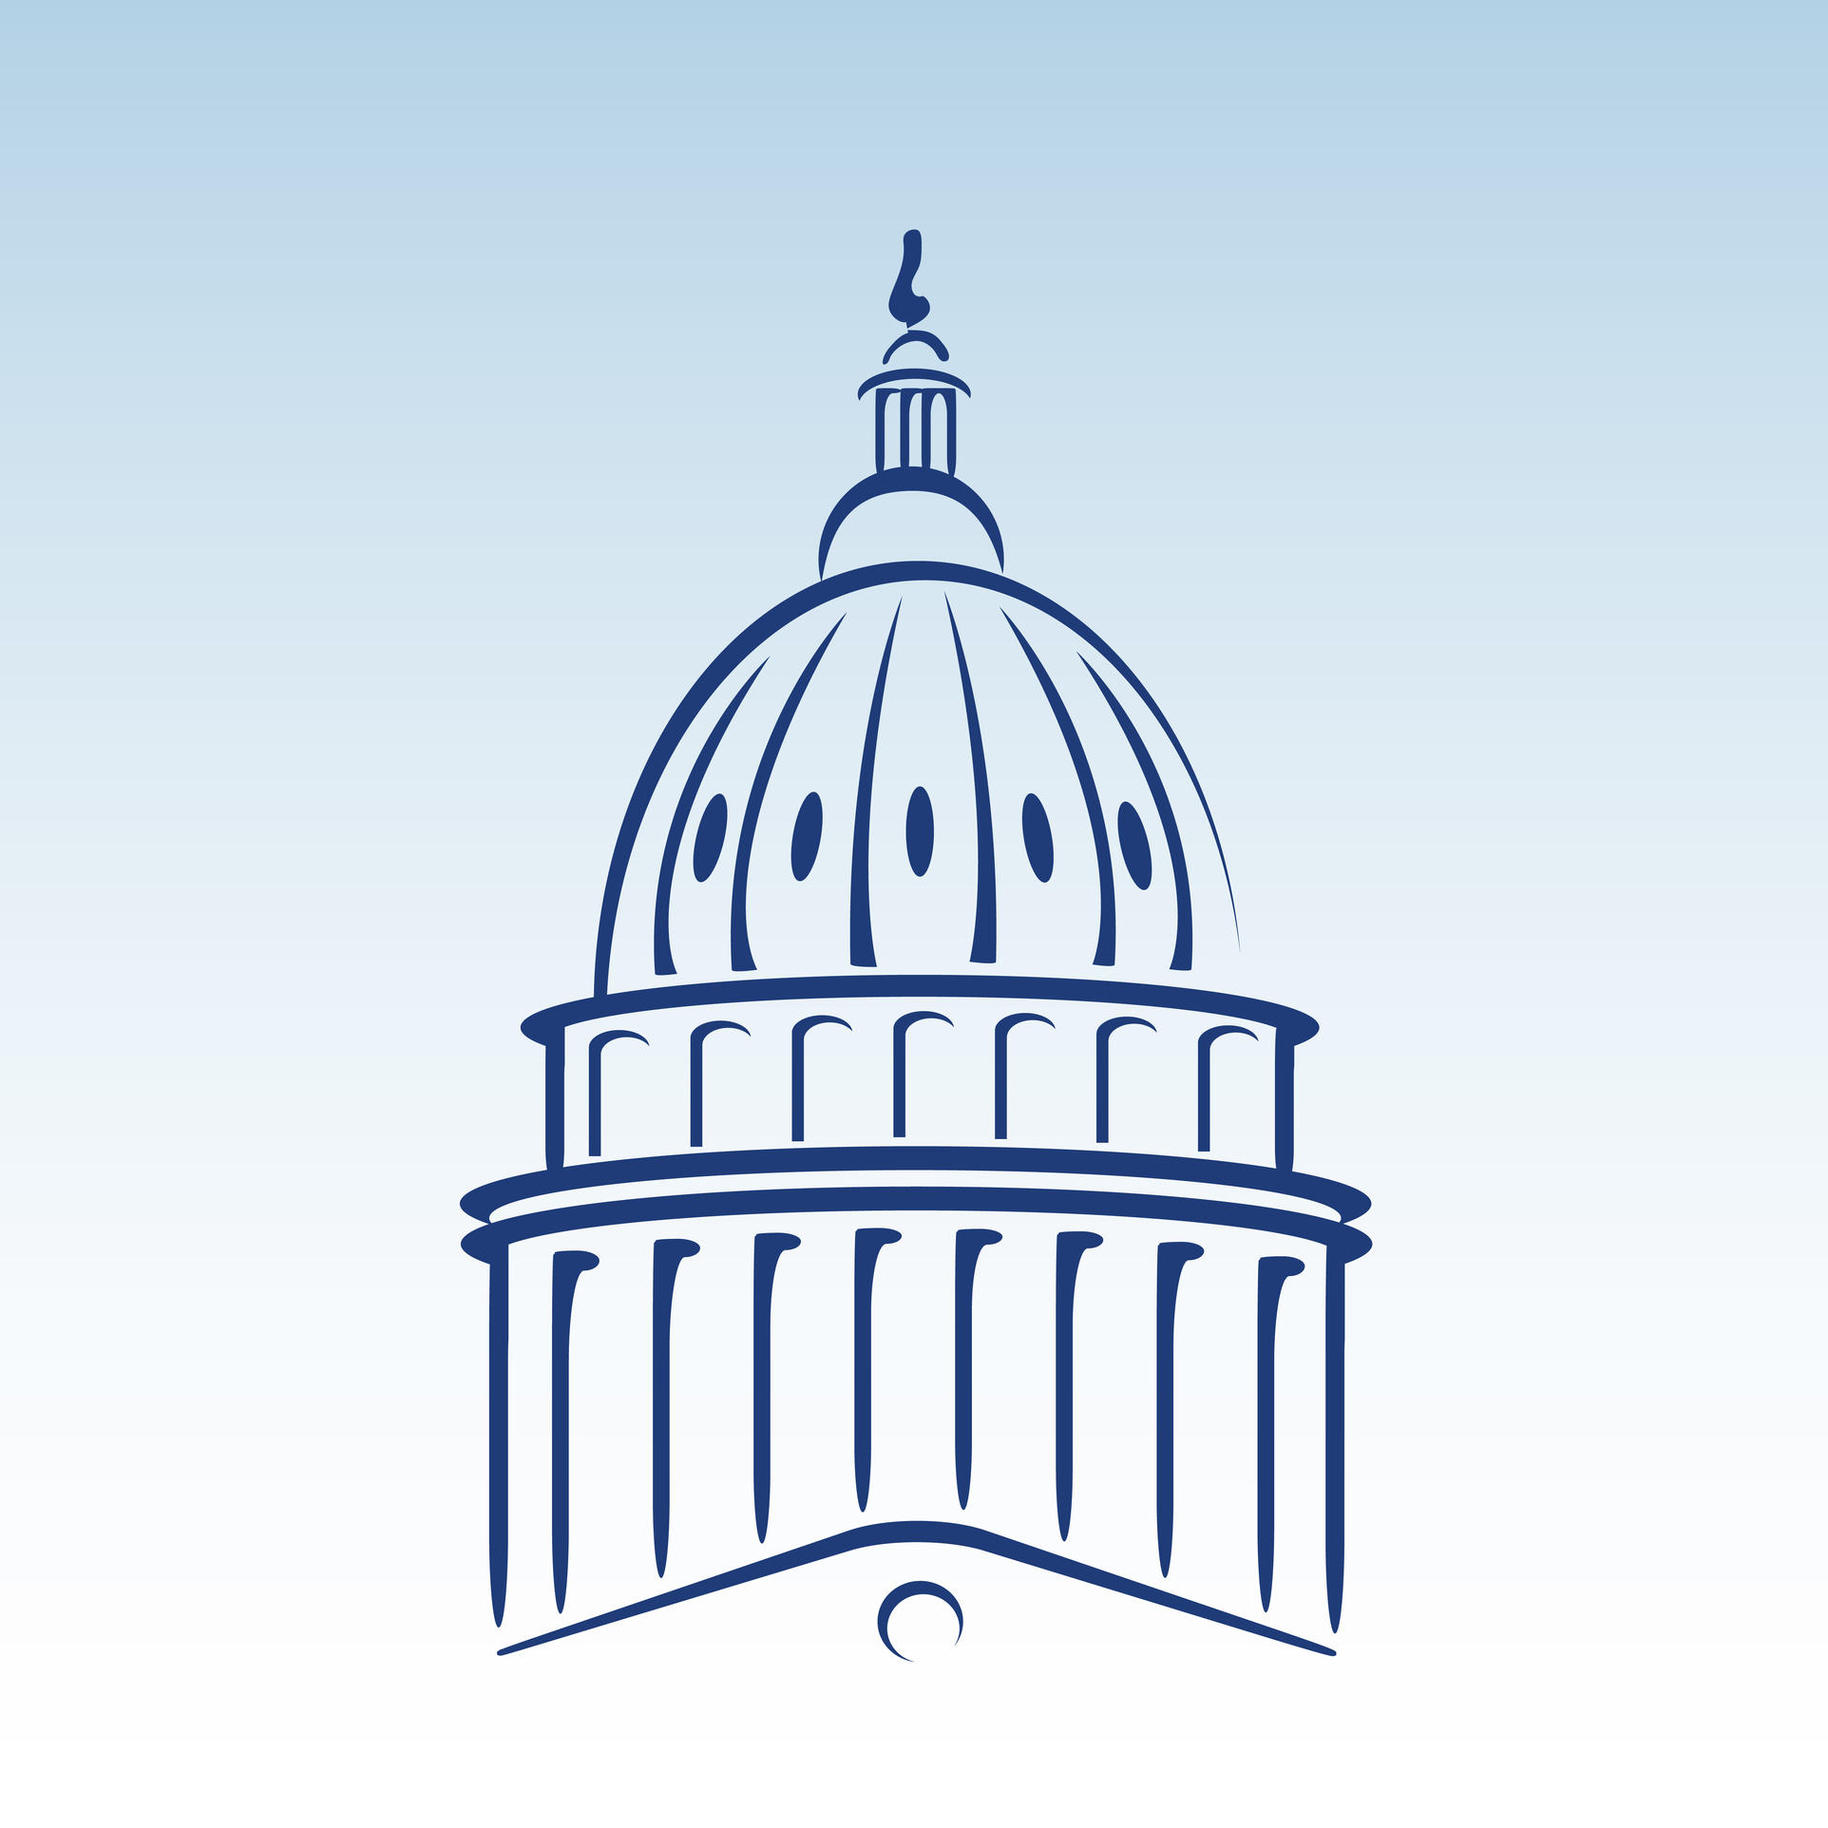 US Capitol Dome Vector Illustration The Observation Deck Clipart.